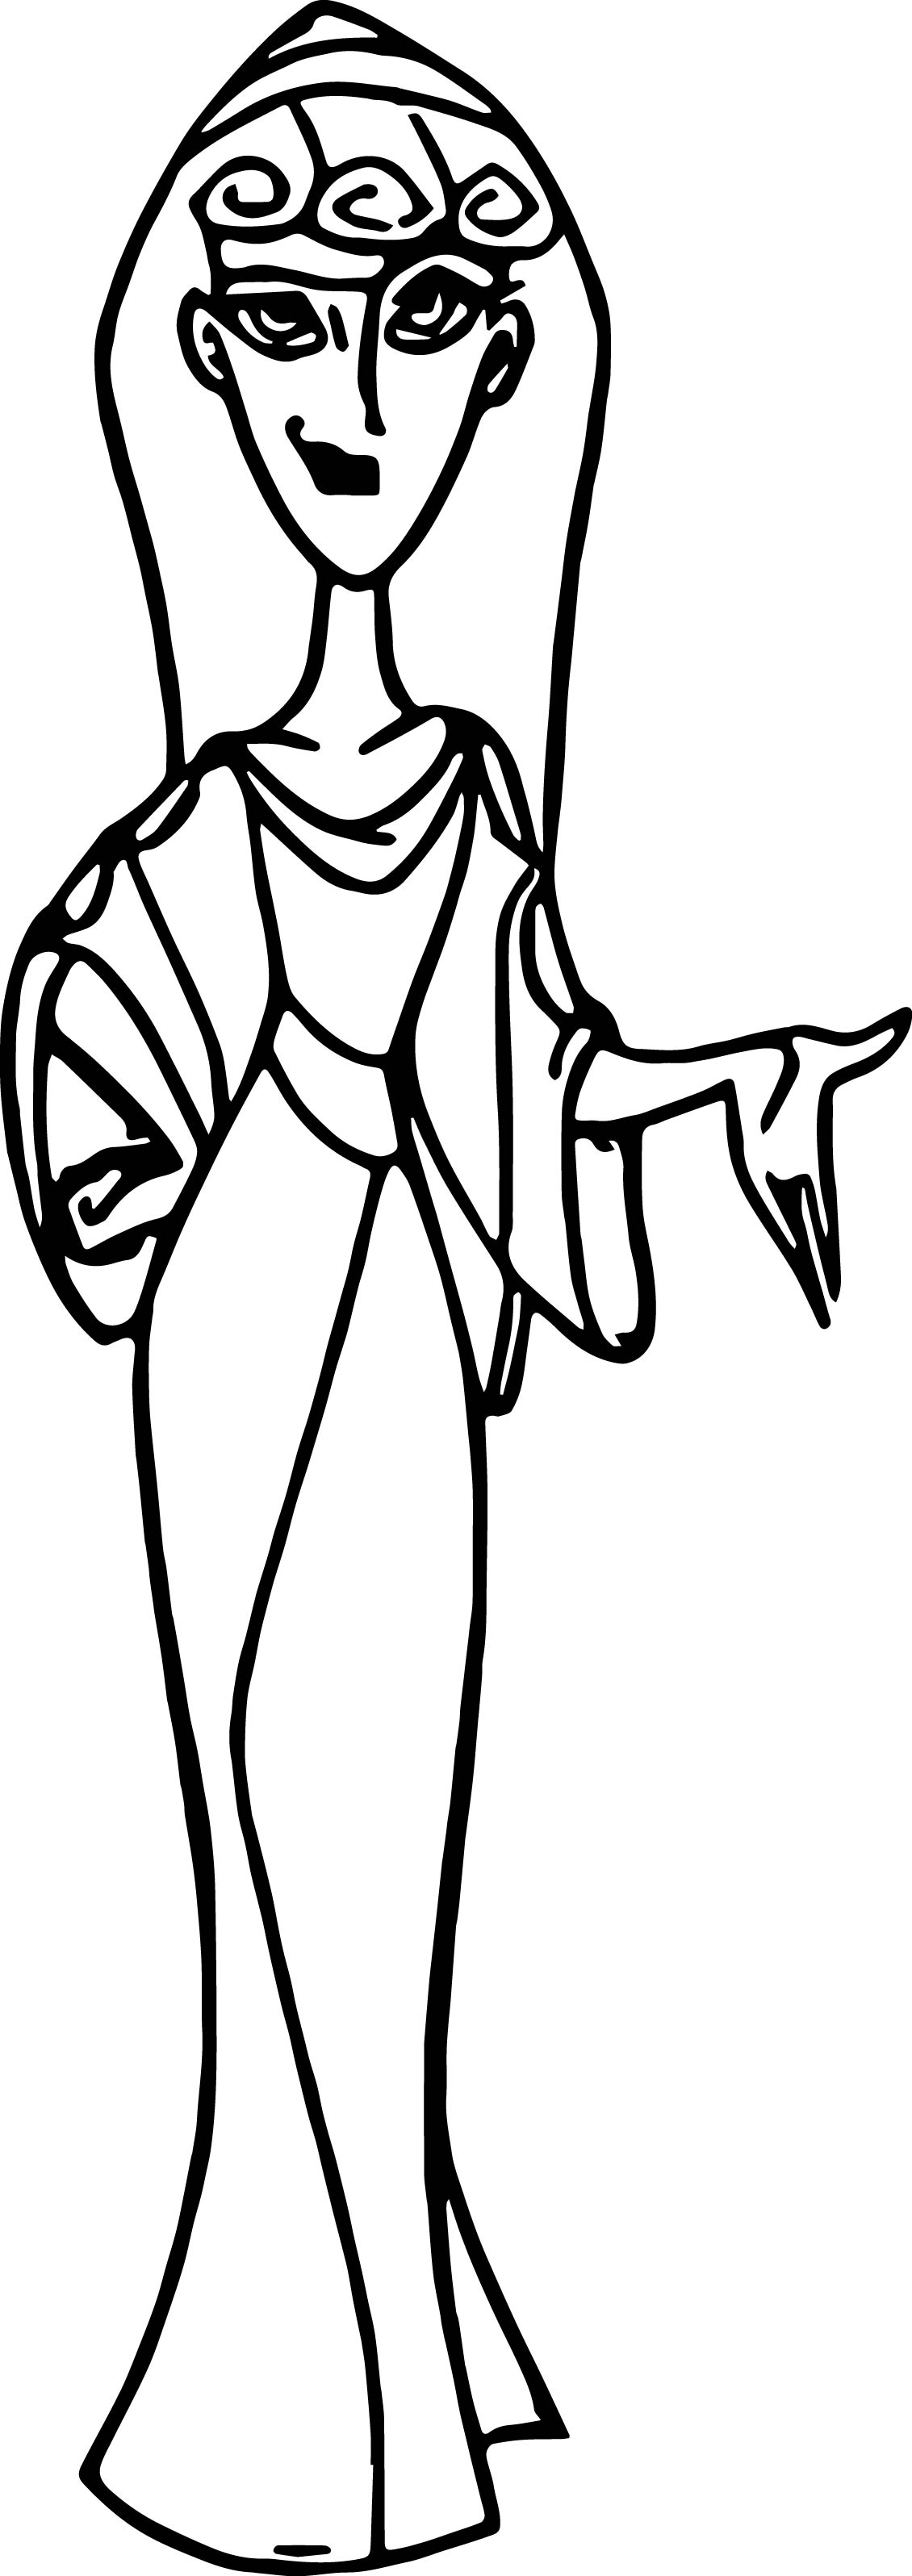 Cassandra Woman Coloring Pages